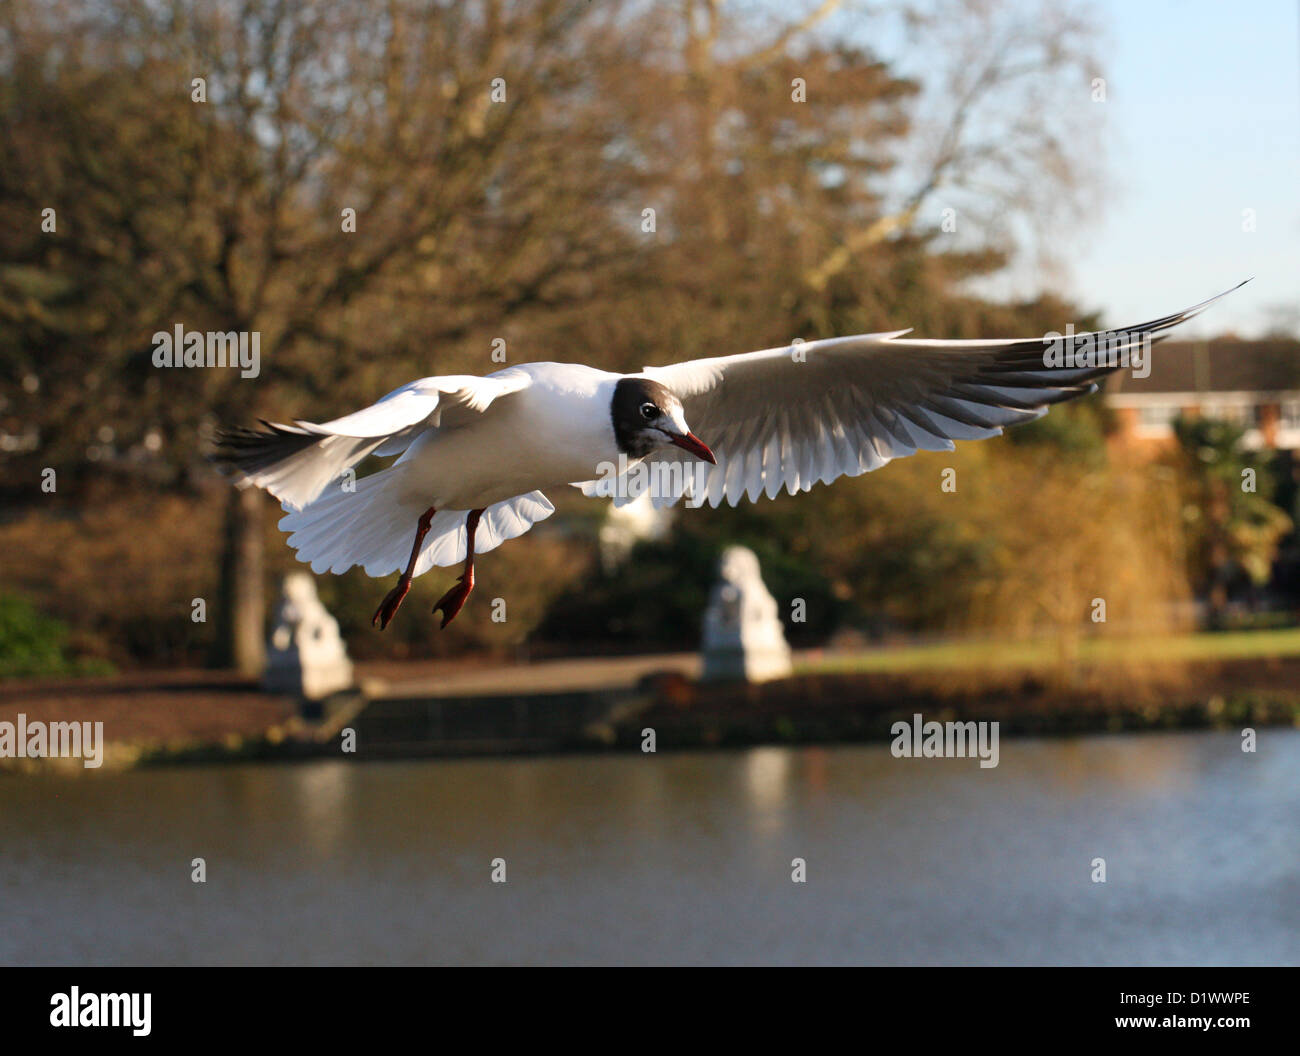 Black-headed Gull, Chroicocephalus ridibundus, Laridae Flying Stock Photo